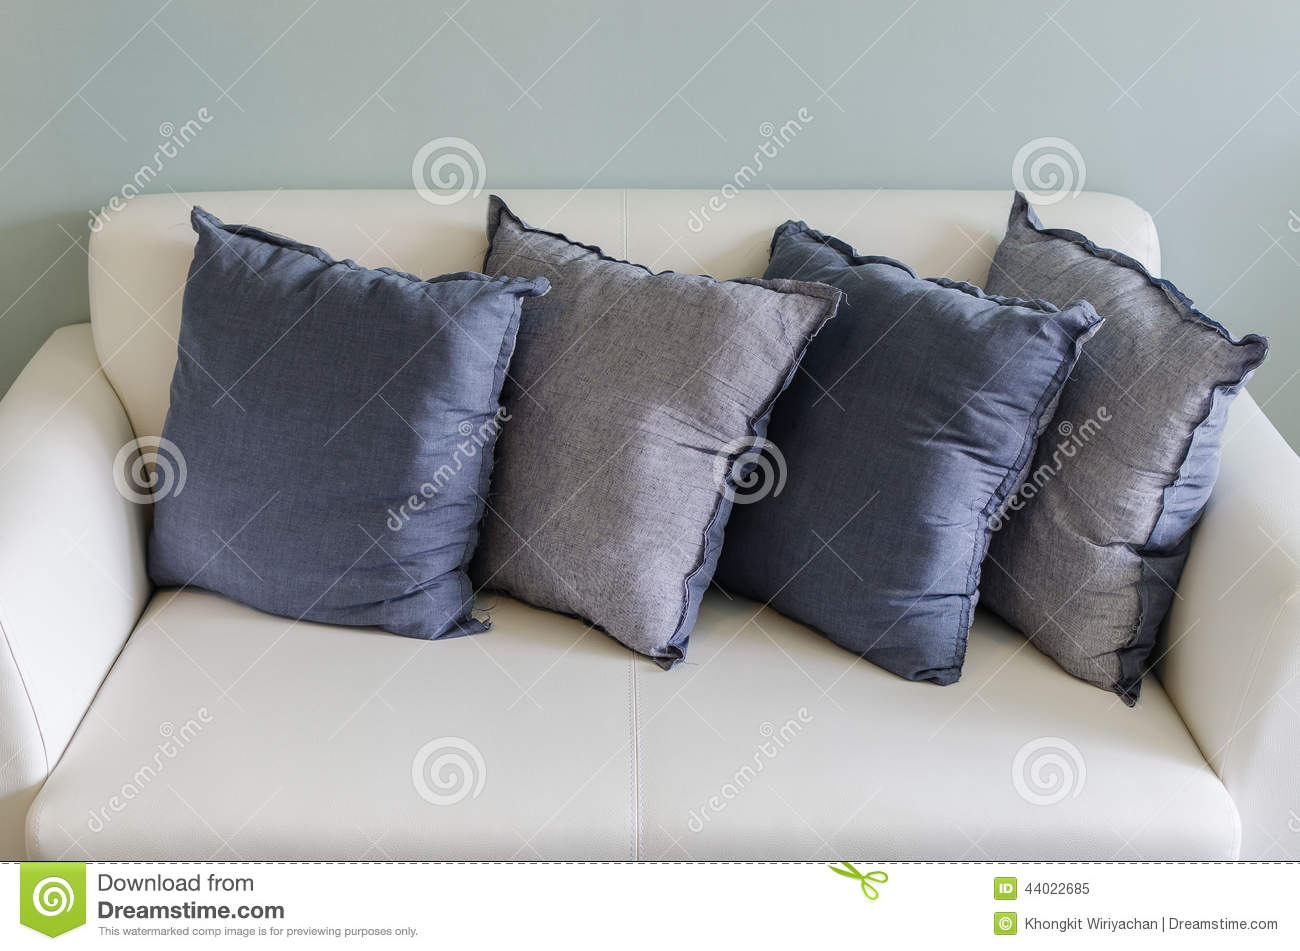 Remarkable Blue Pillows On White Leather Sofa Stock Image Image Of Ncnpc Chair Design For Home Ncnpcorg